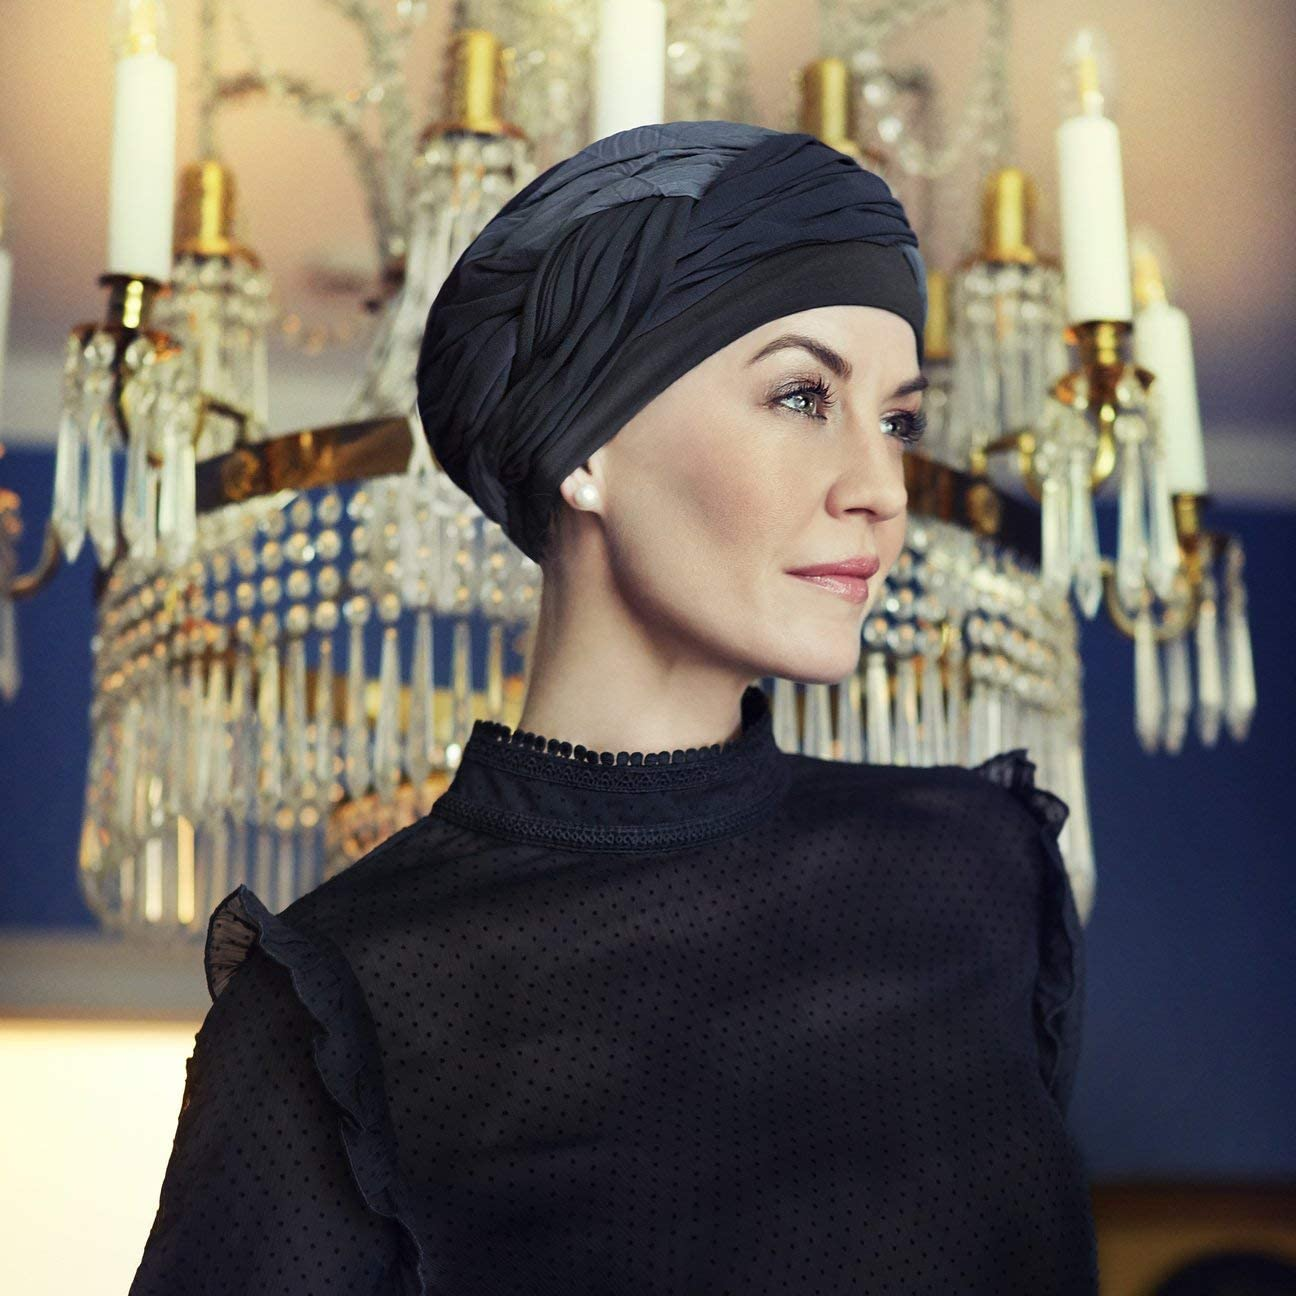 Christine headwear Turbante ChiffonHeadwear